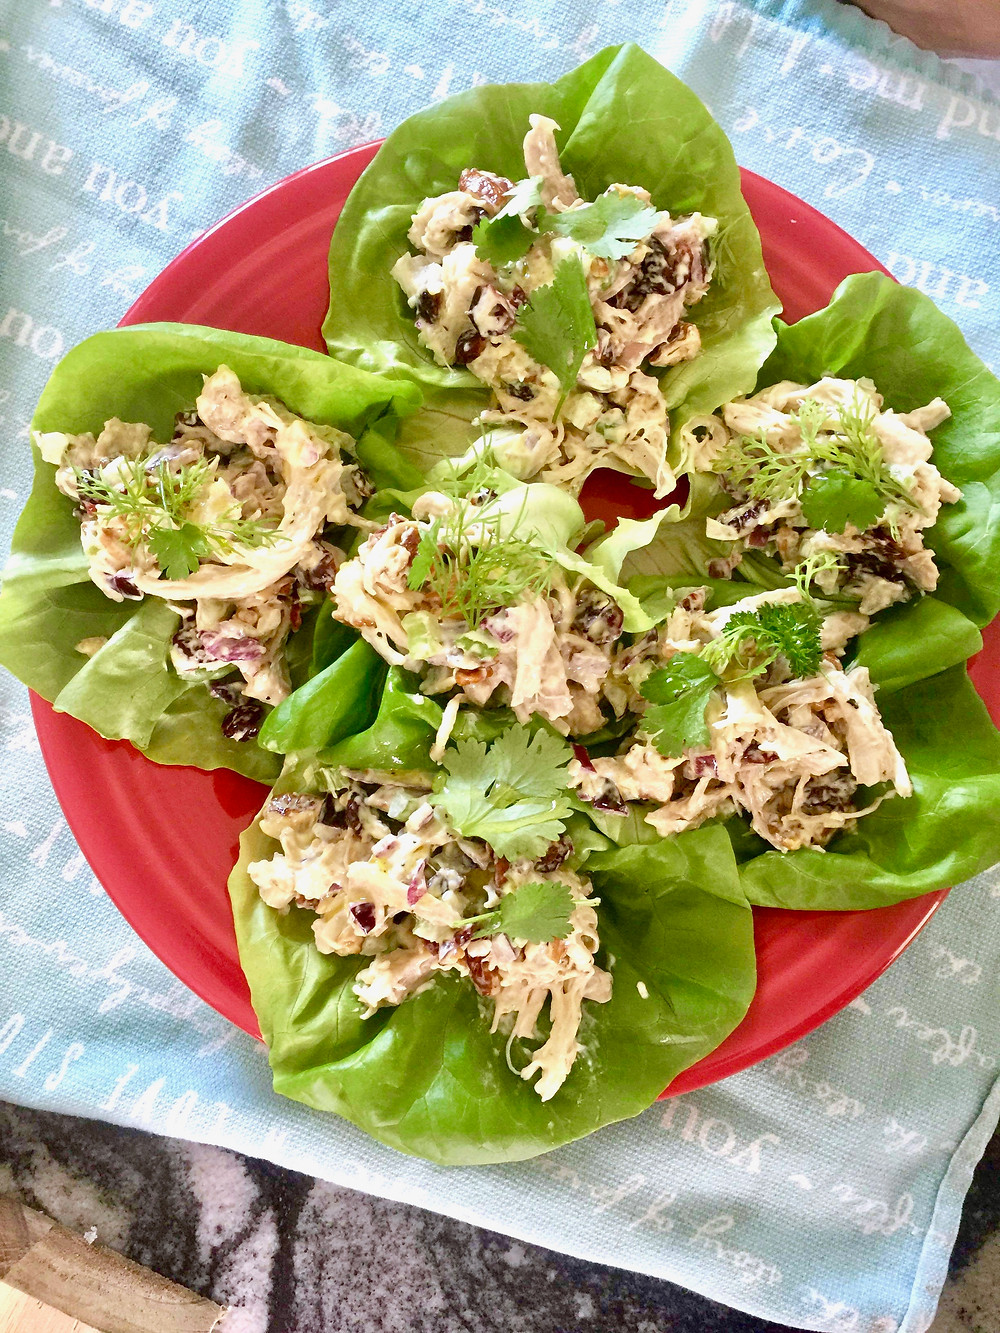 Chicken salad served on a bed of greens